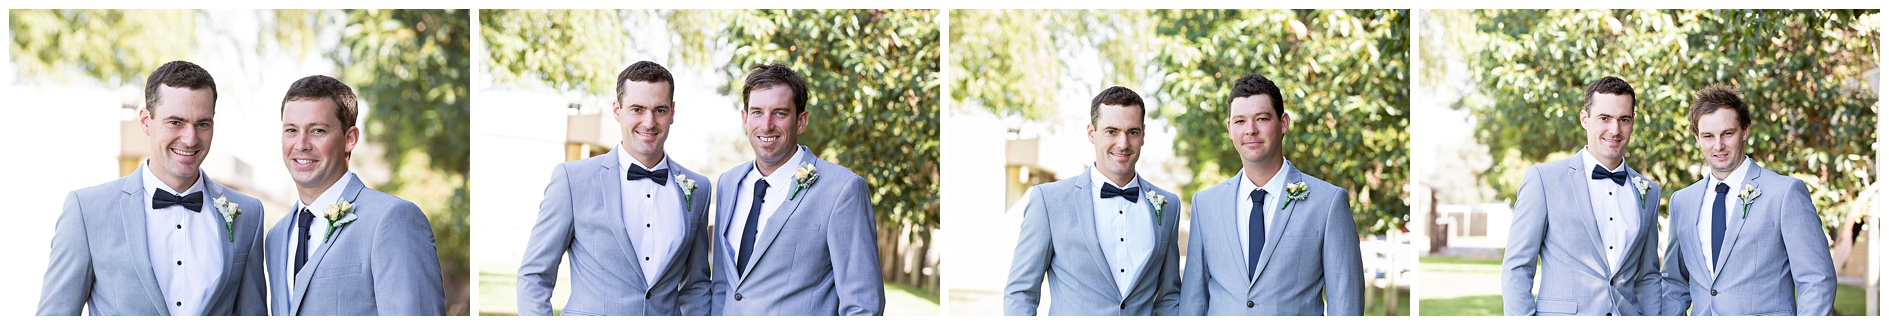 yarrawonga-wedding-photographer_0004.jpg